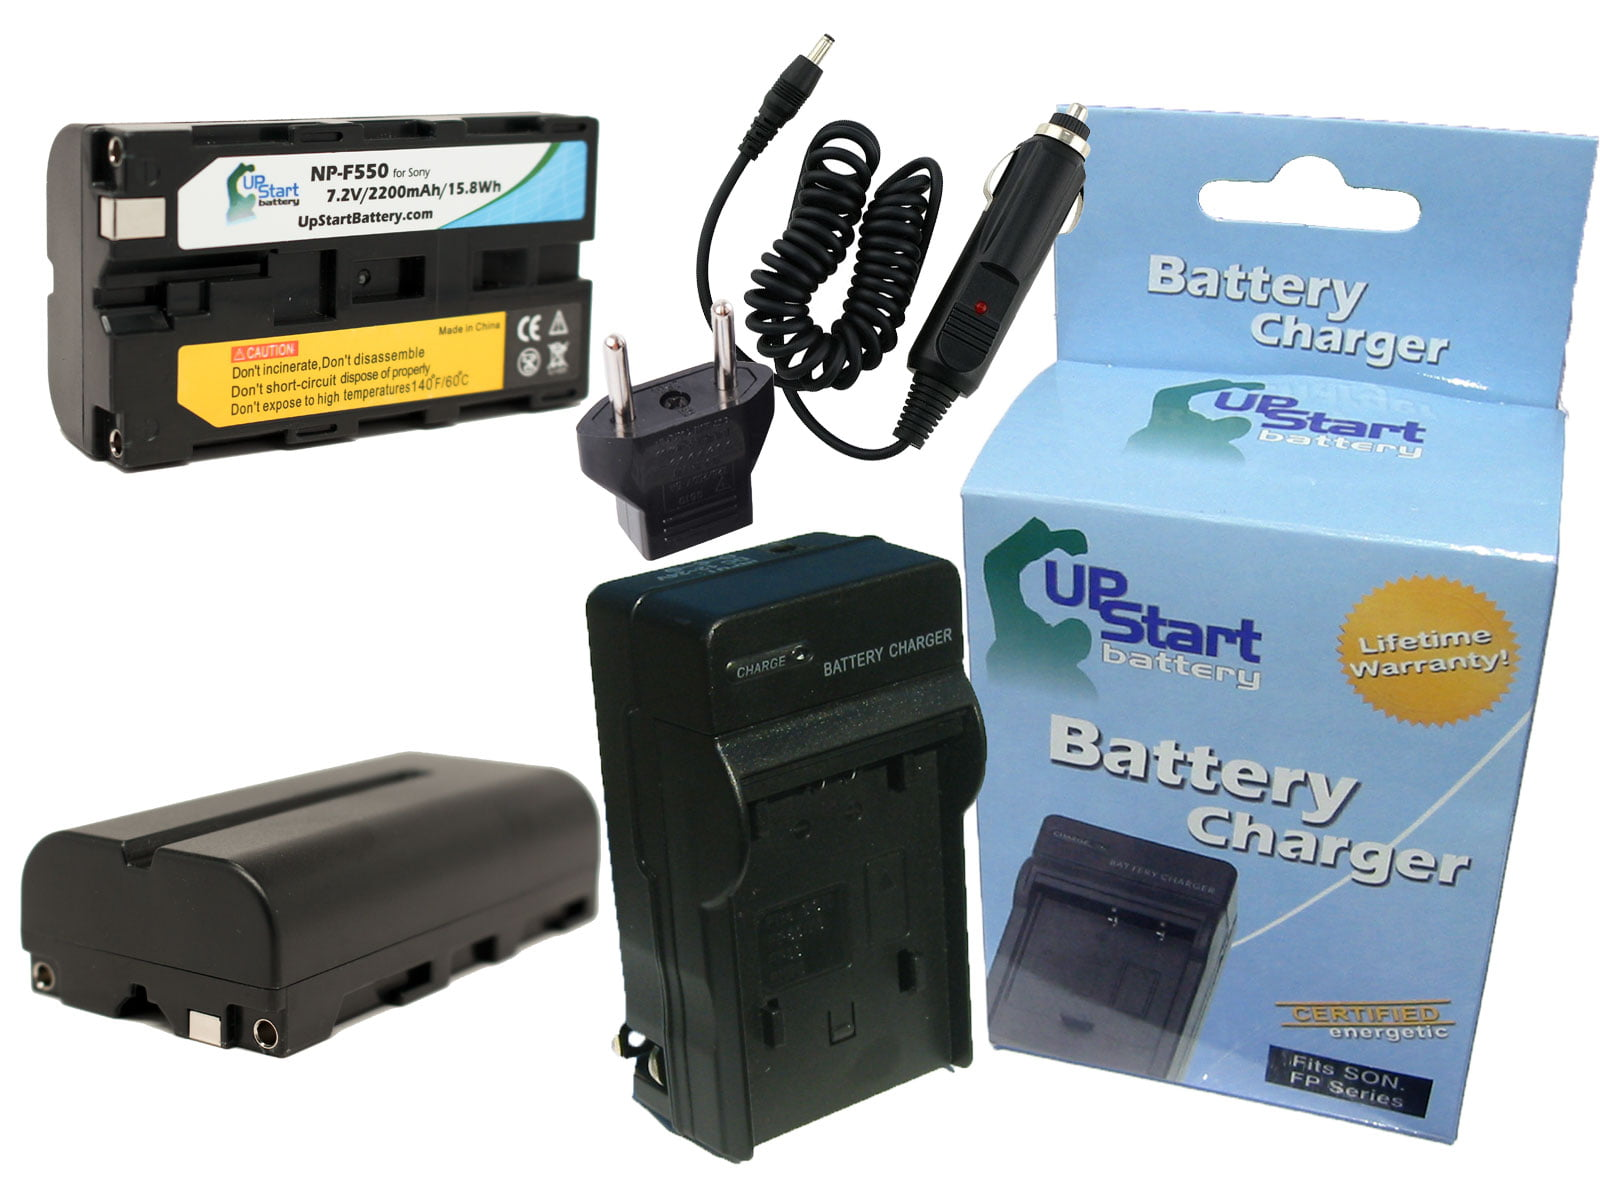 2200mAh 7.2V Lithium-Ion Compatible with Sony NP-F550 Digital Camera Batteries and Chargers Replacement for Sony NEX-FS100 Battery and Charger